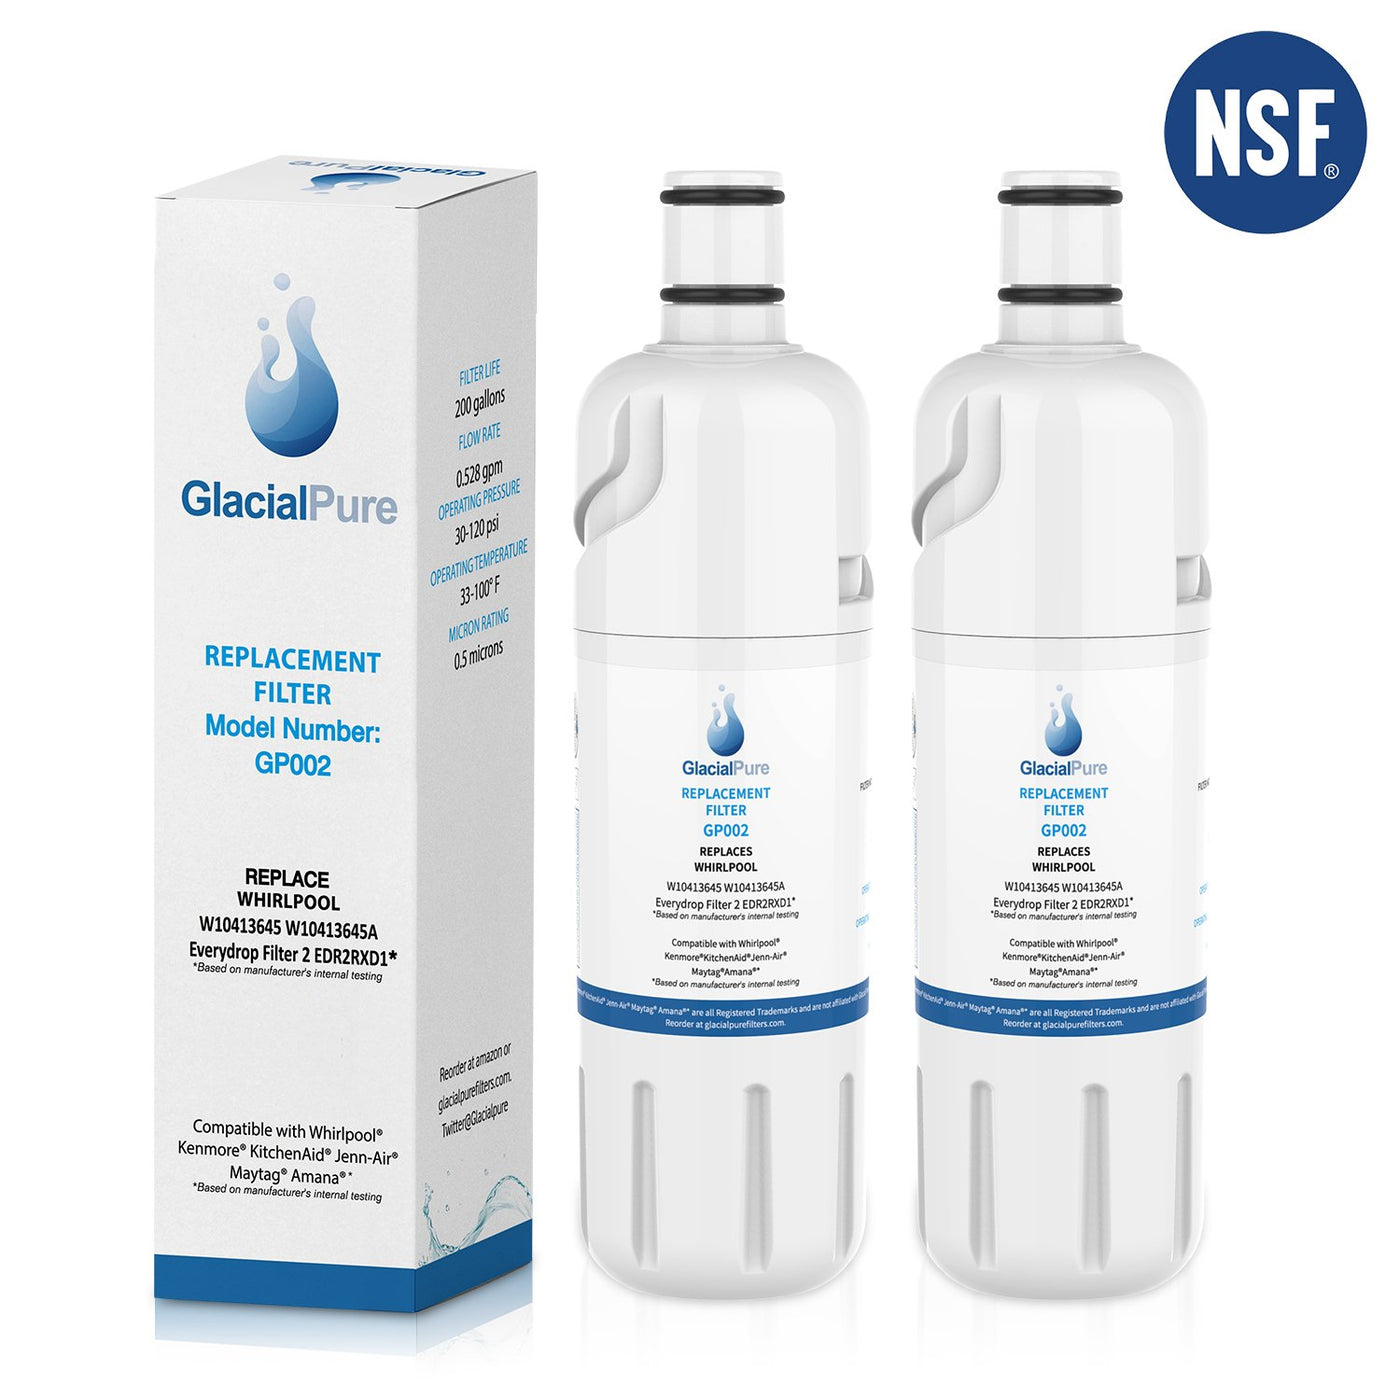 GlacialPure Refrigerator Water Filter for Whirlpool Filter 2 EDR2RXD1 9082 W10413645A 2 Packs